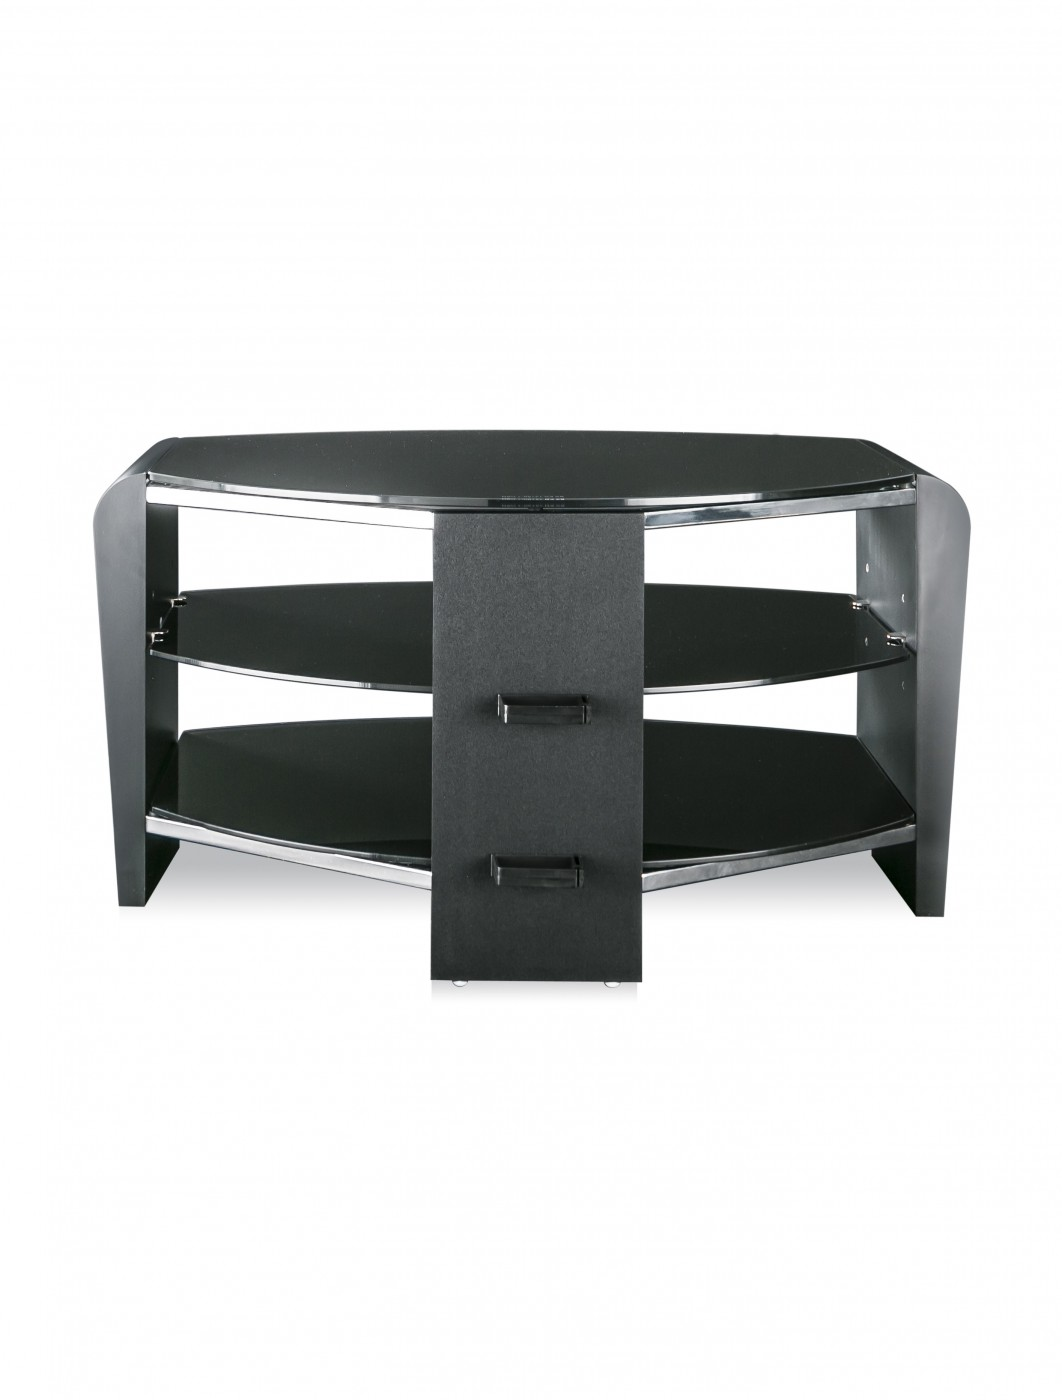 alphason frn800 3blk bk francium tv stand enlarged view